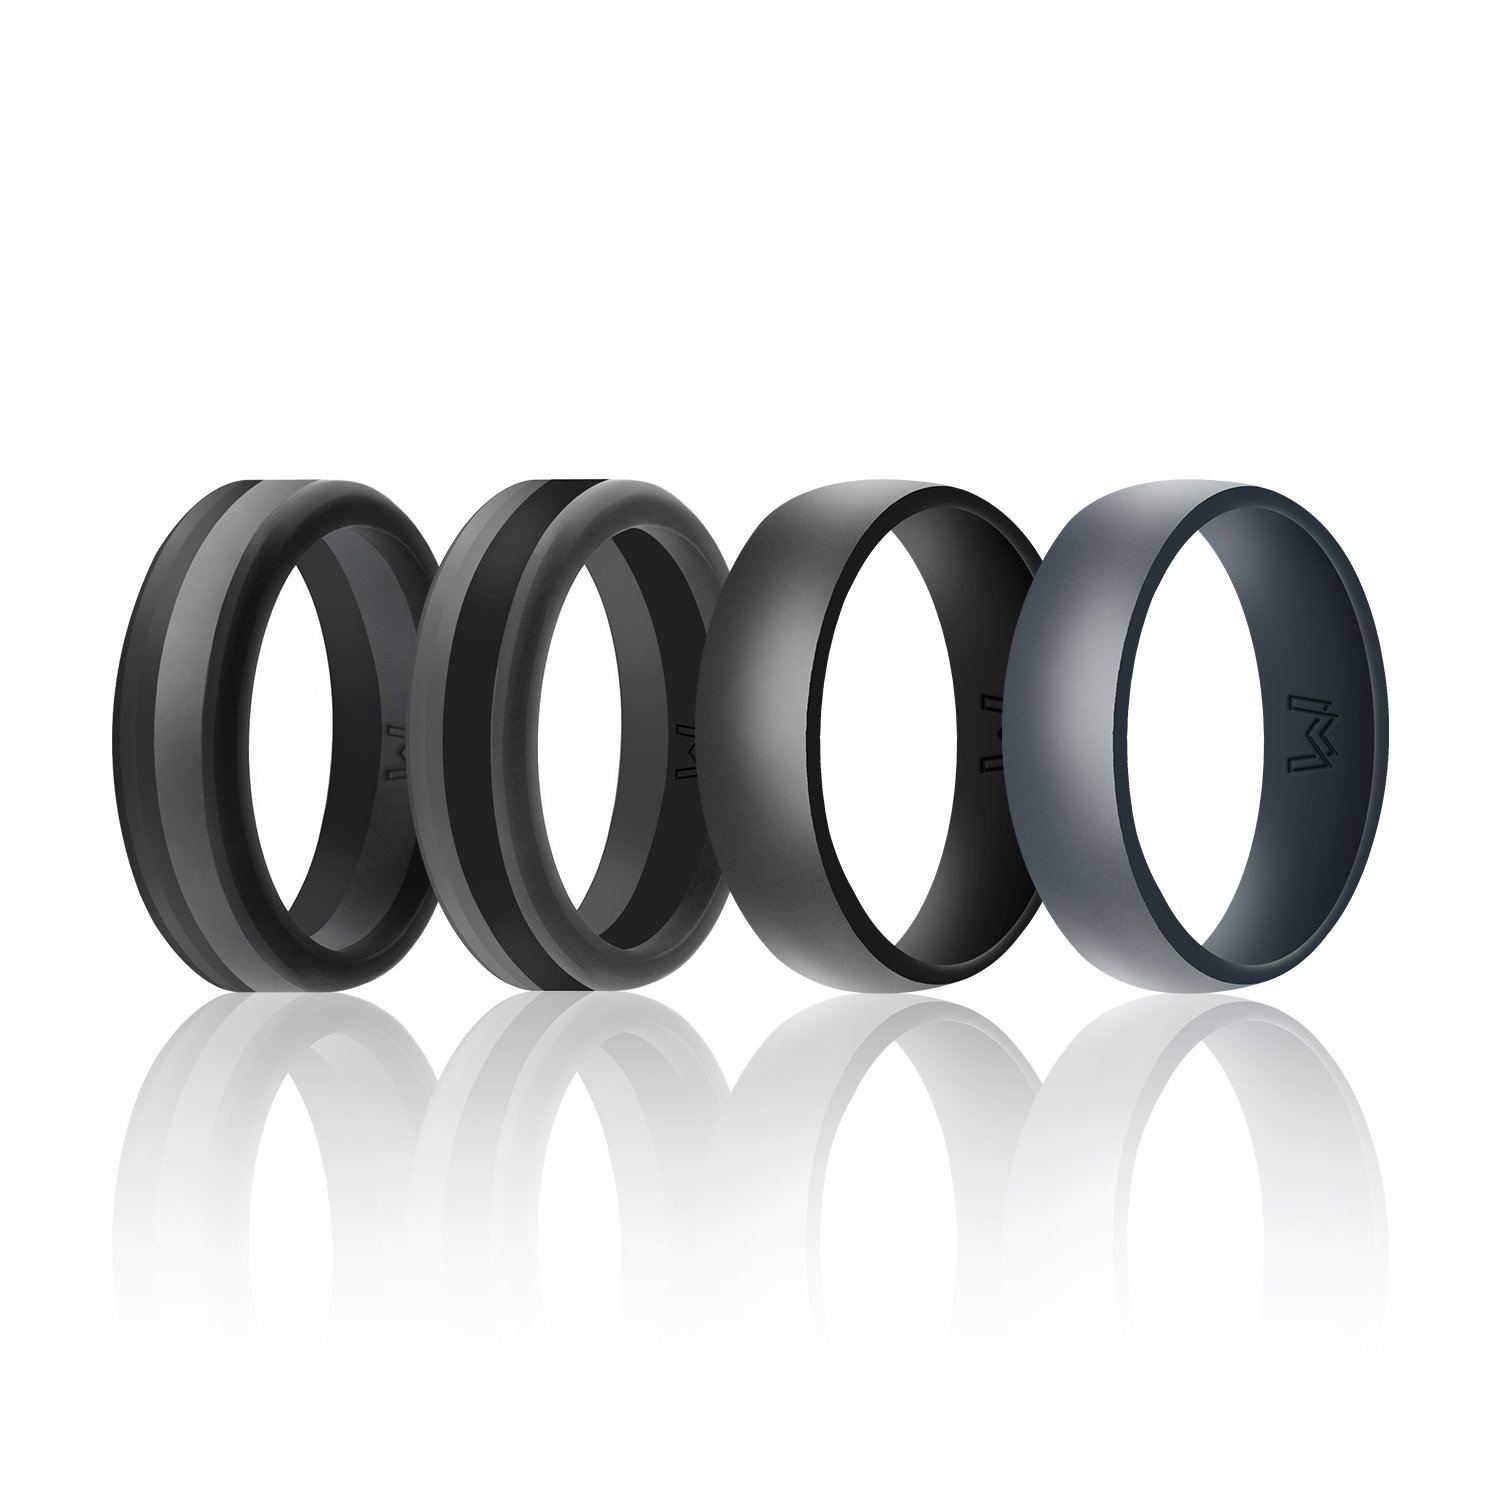 Wigerlon Mens Silicone Wedding Ring& Wedding Bands Skin Safe for Active Athletes, Workout, Military Width 8mm Pack of 4